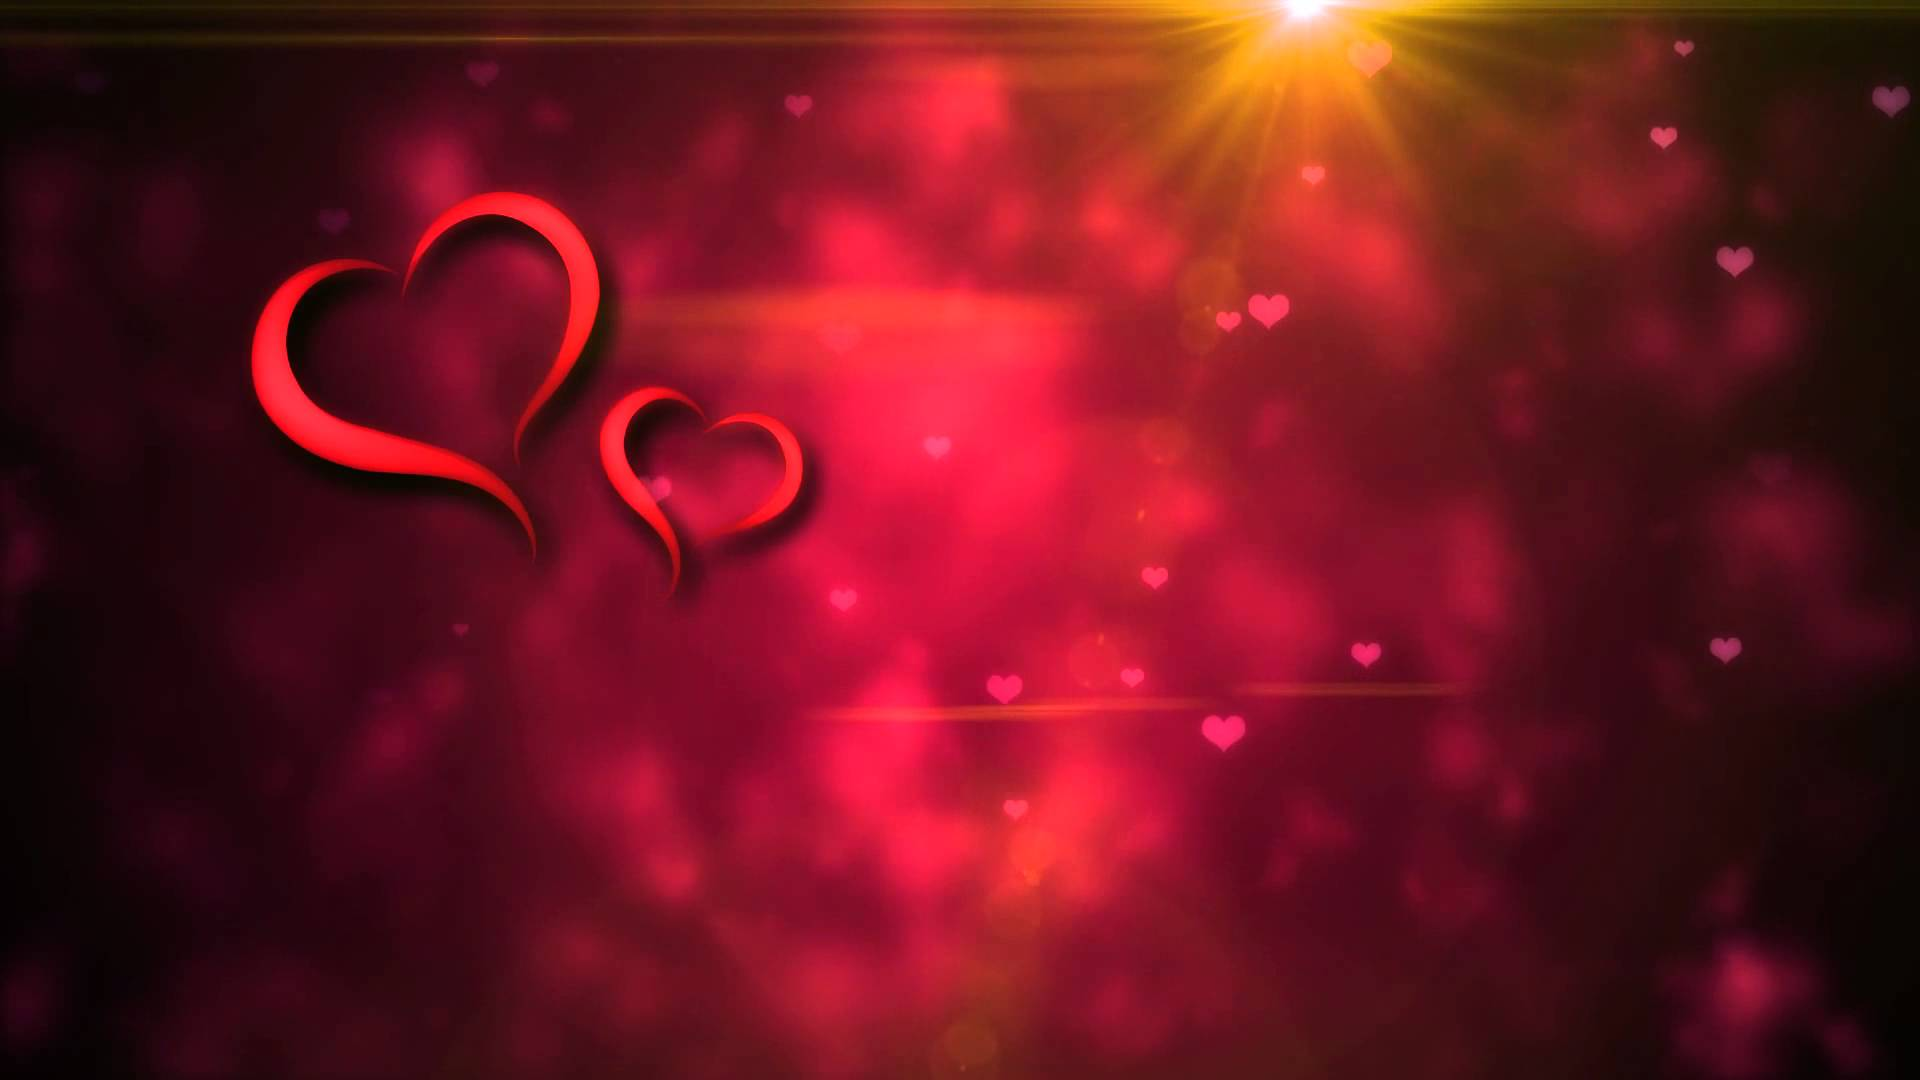 Love Wallpapers Editing : Hd Wedding Backgrounds - WallpaperSafari